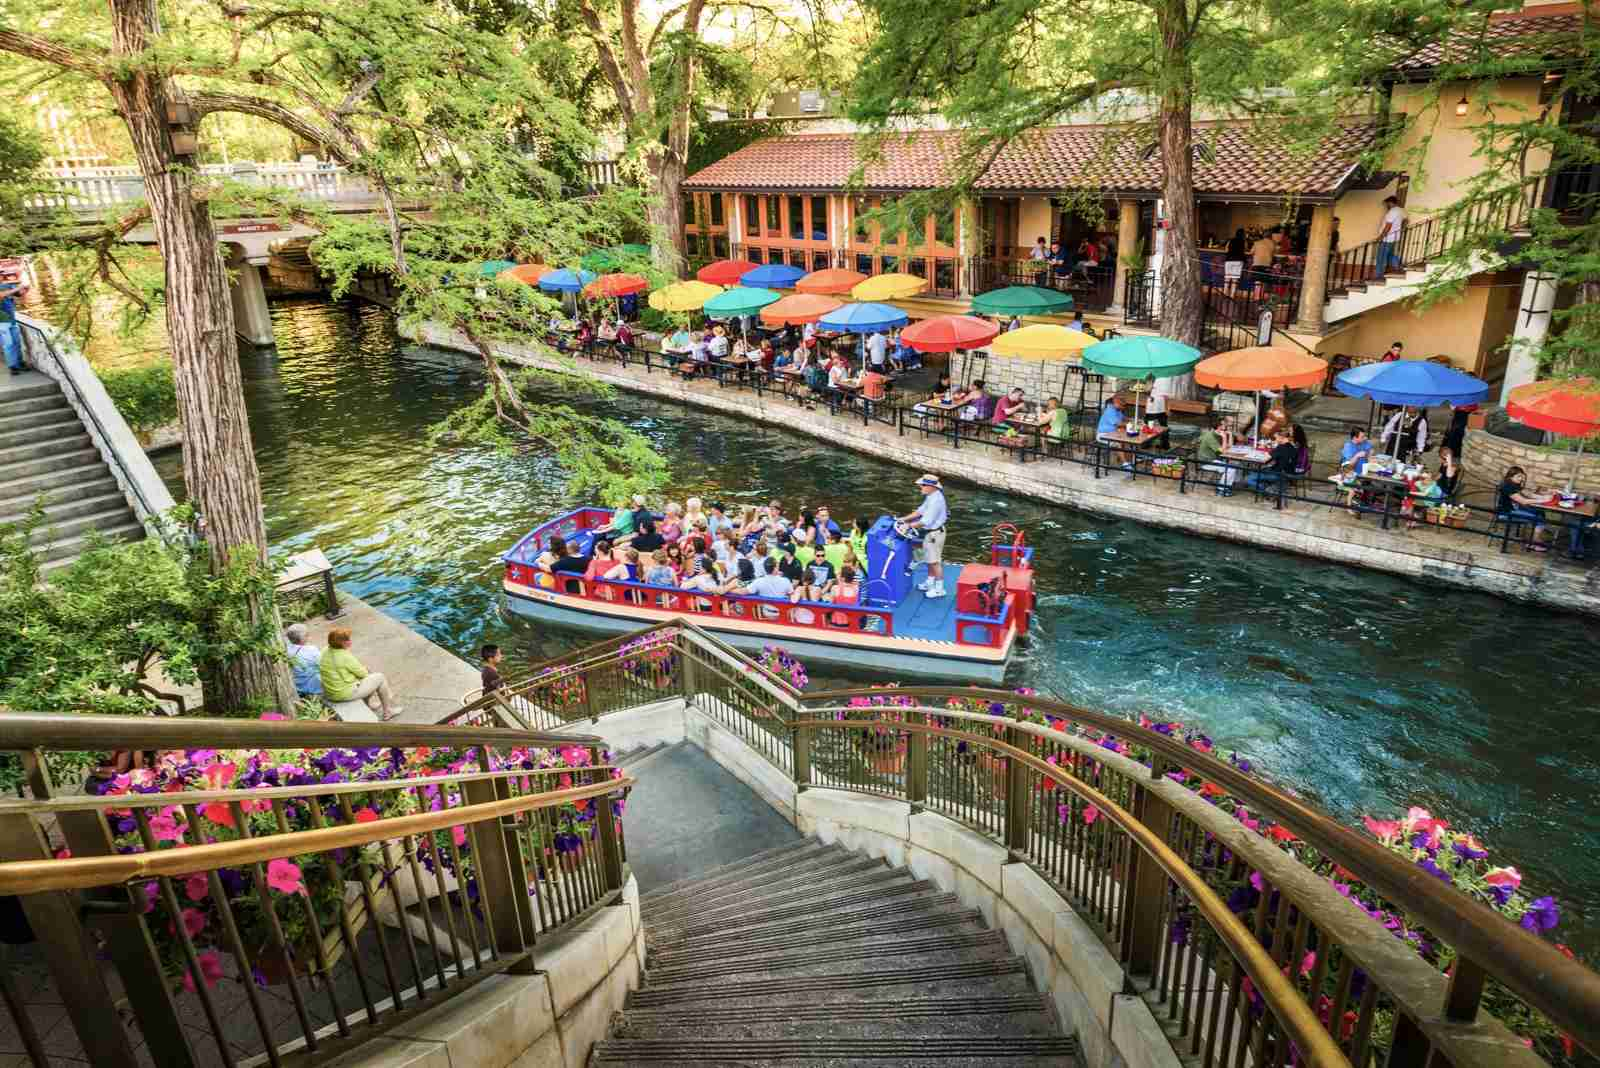 The San Antonio River Walk and the scenic canal tours via boat.(Photo by dszc/Getty Images)